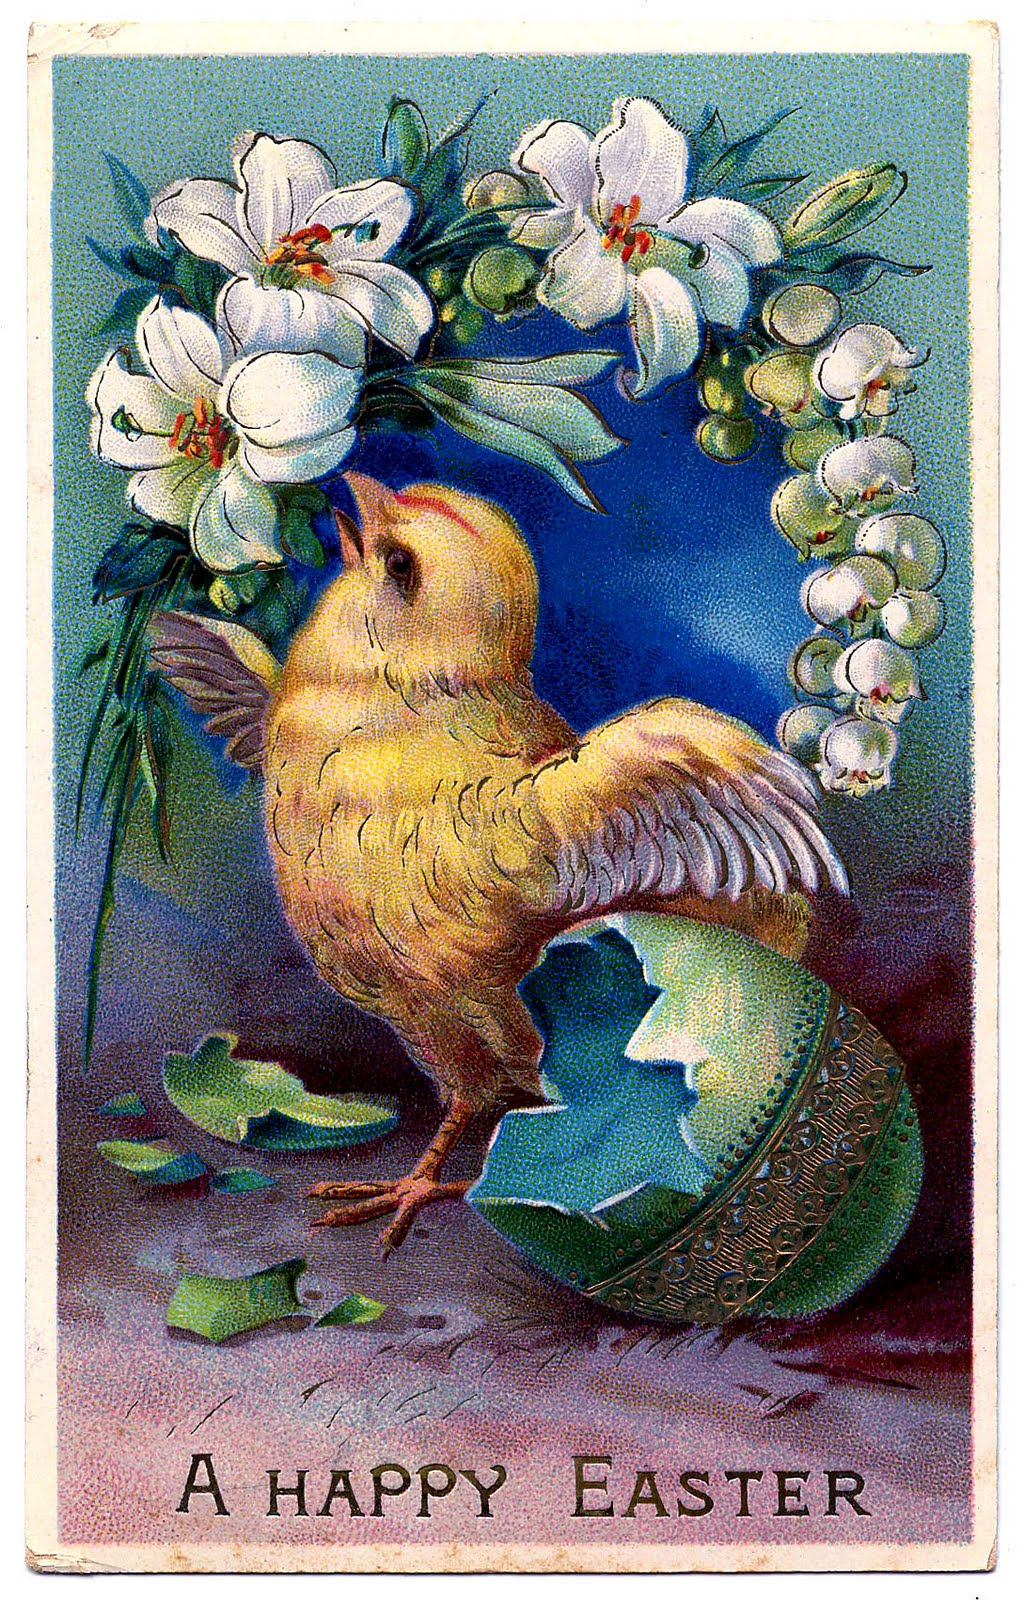 Vintage Easter Clip Art - Sweet Baby Chick with Egg - The ...